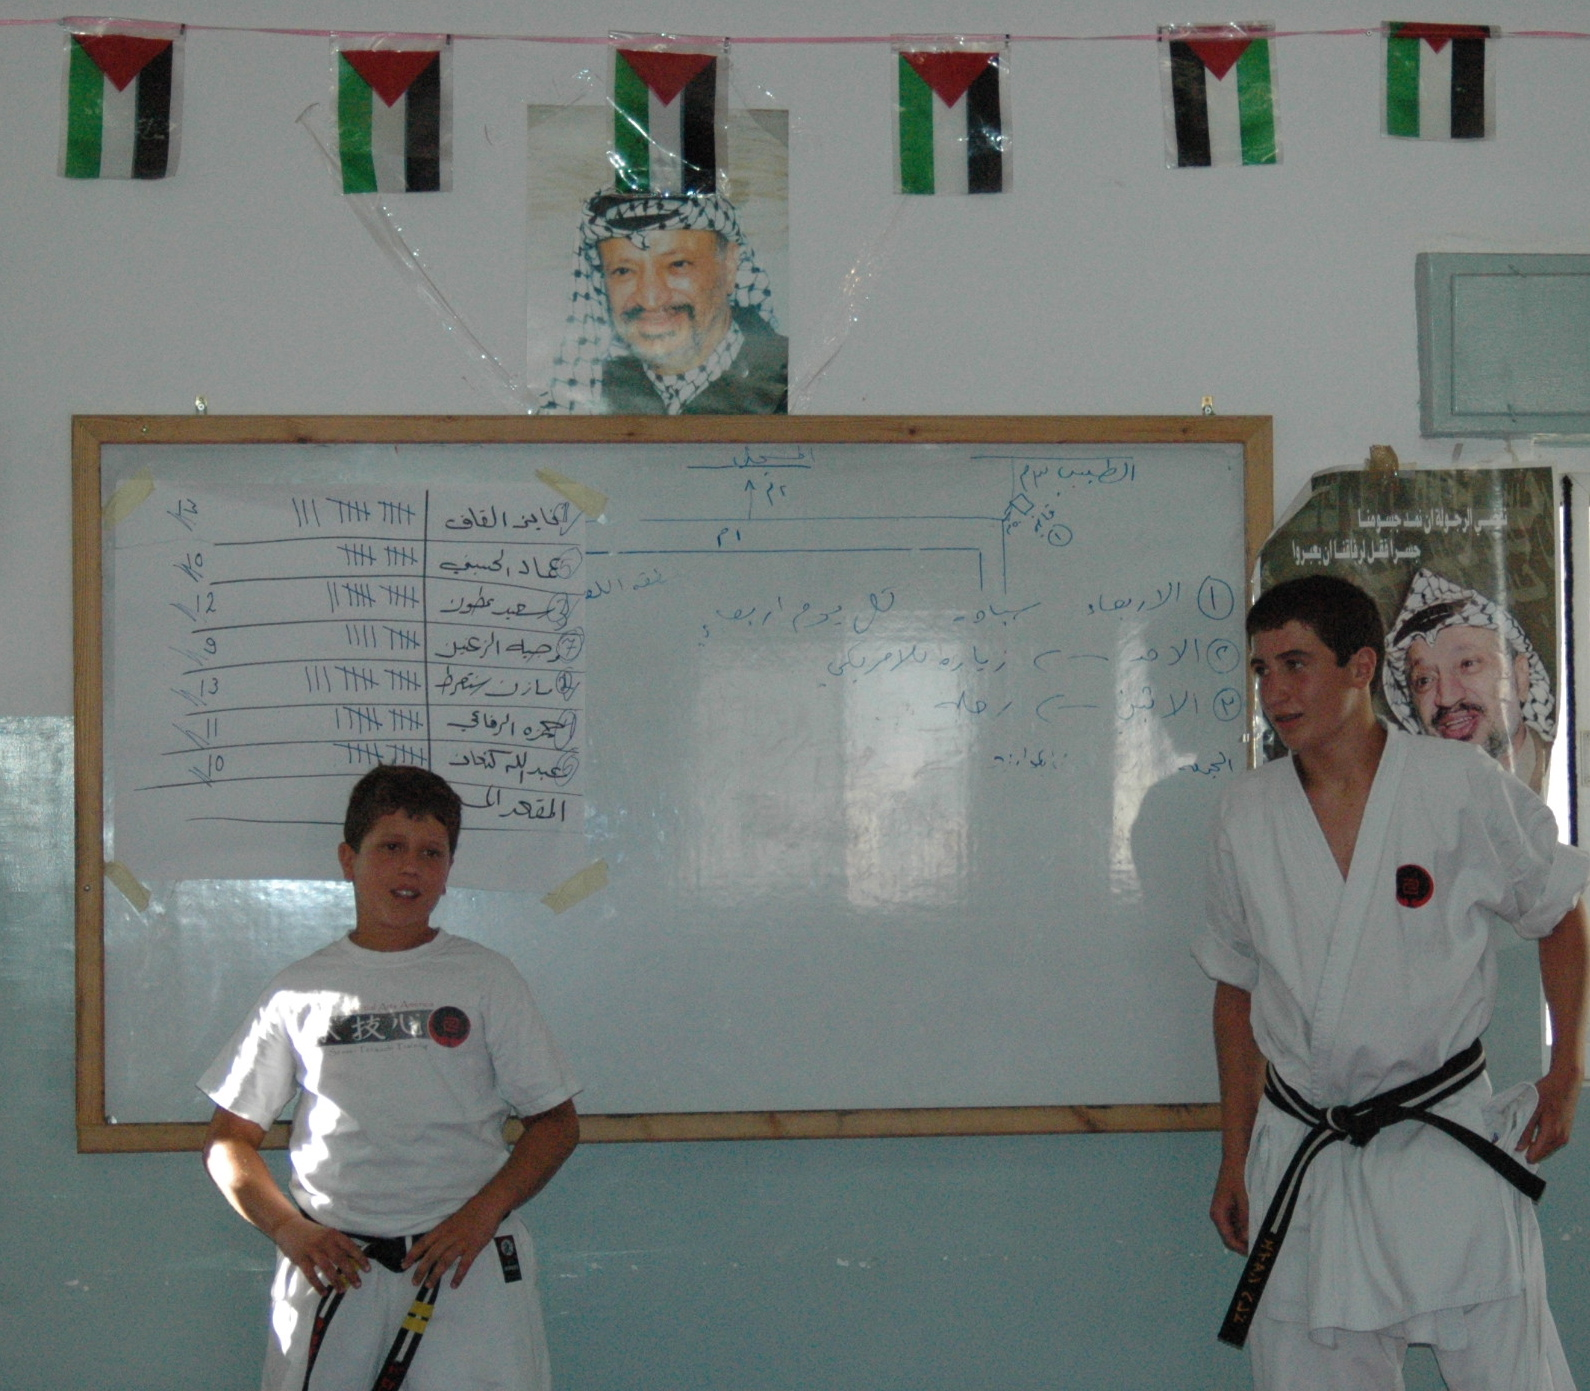 My boys at Anata TKD school. Check out the flags